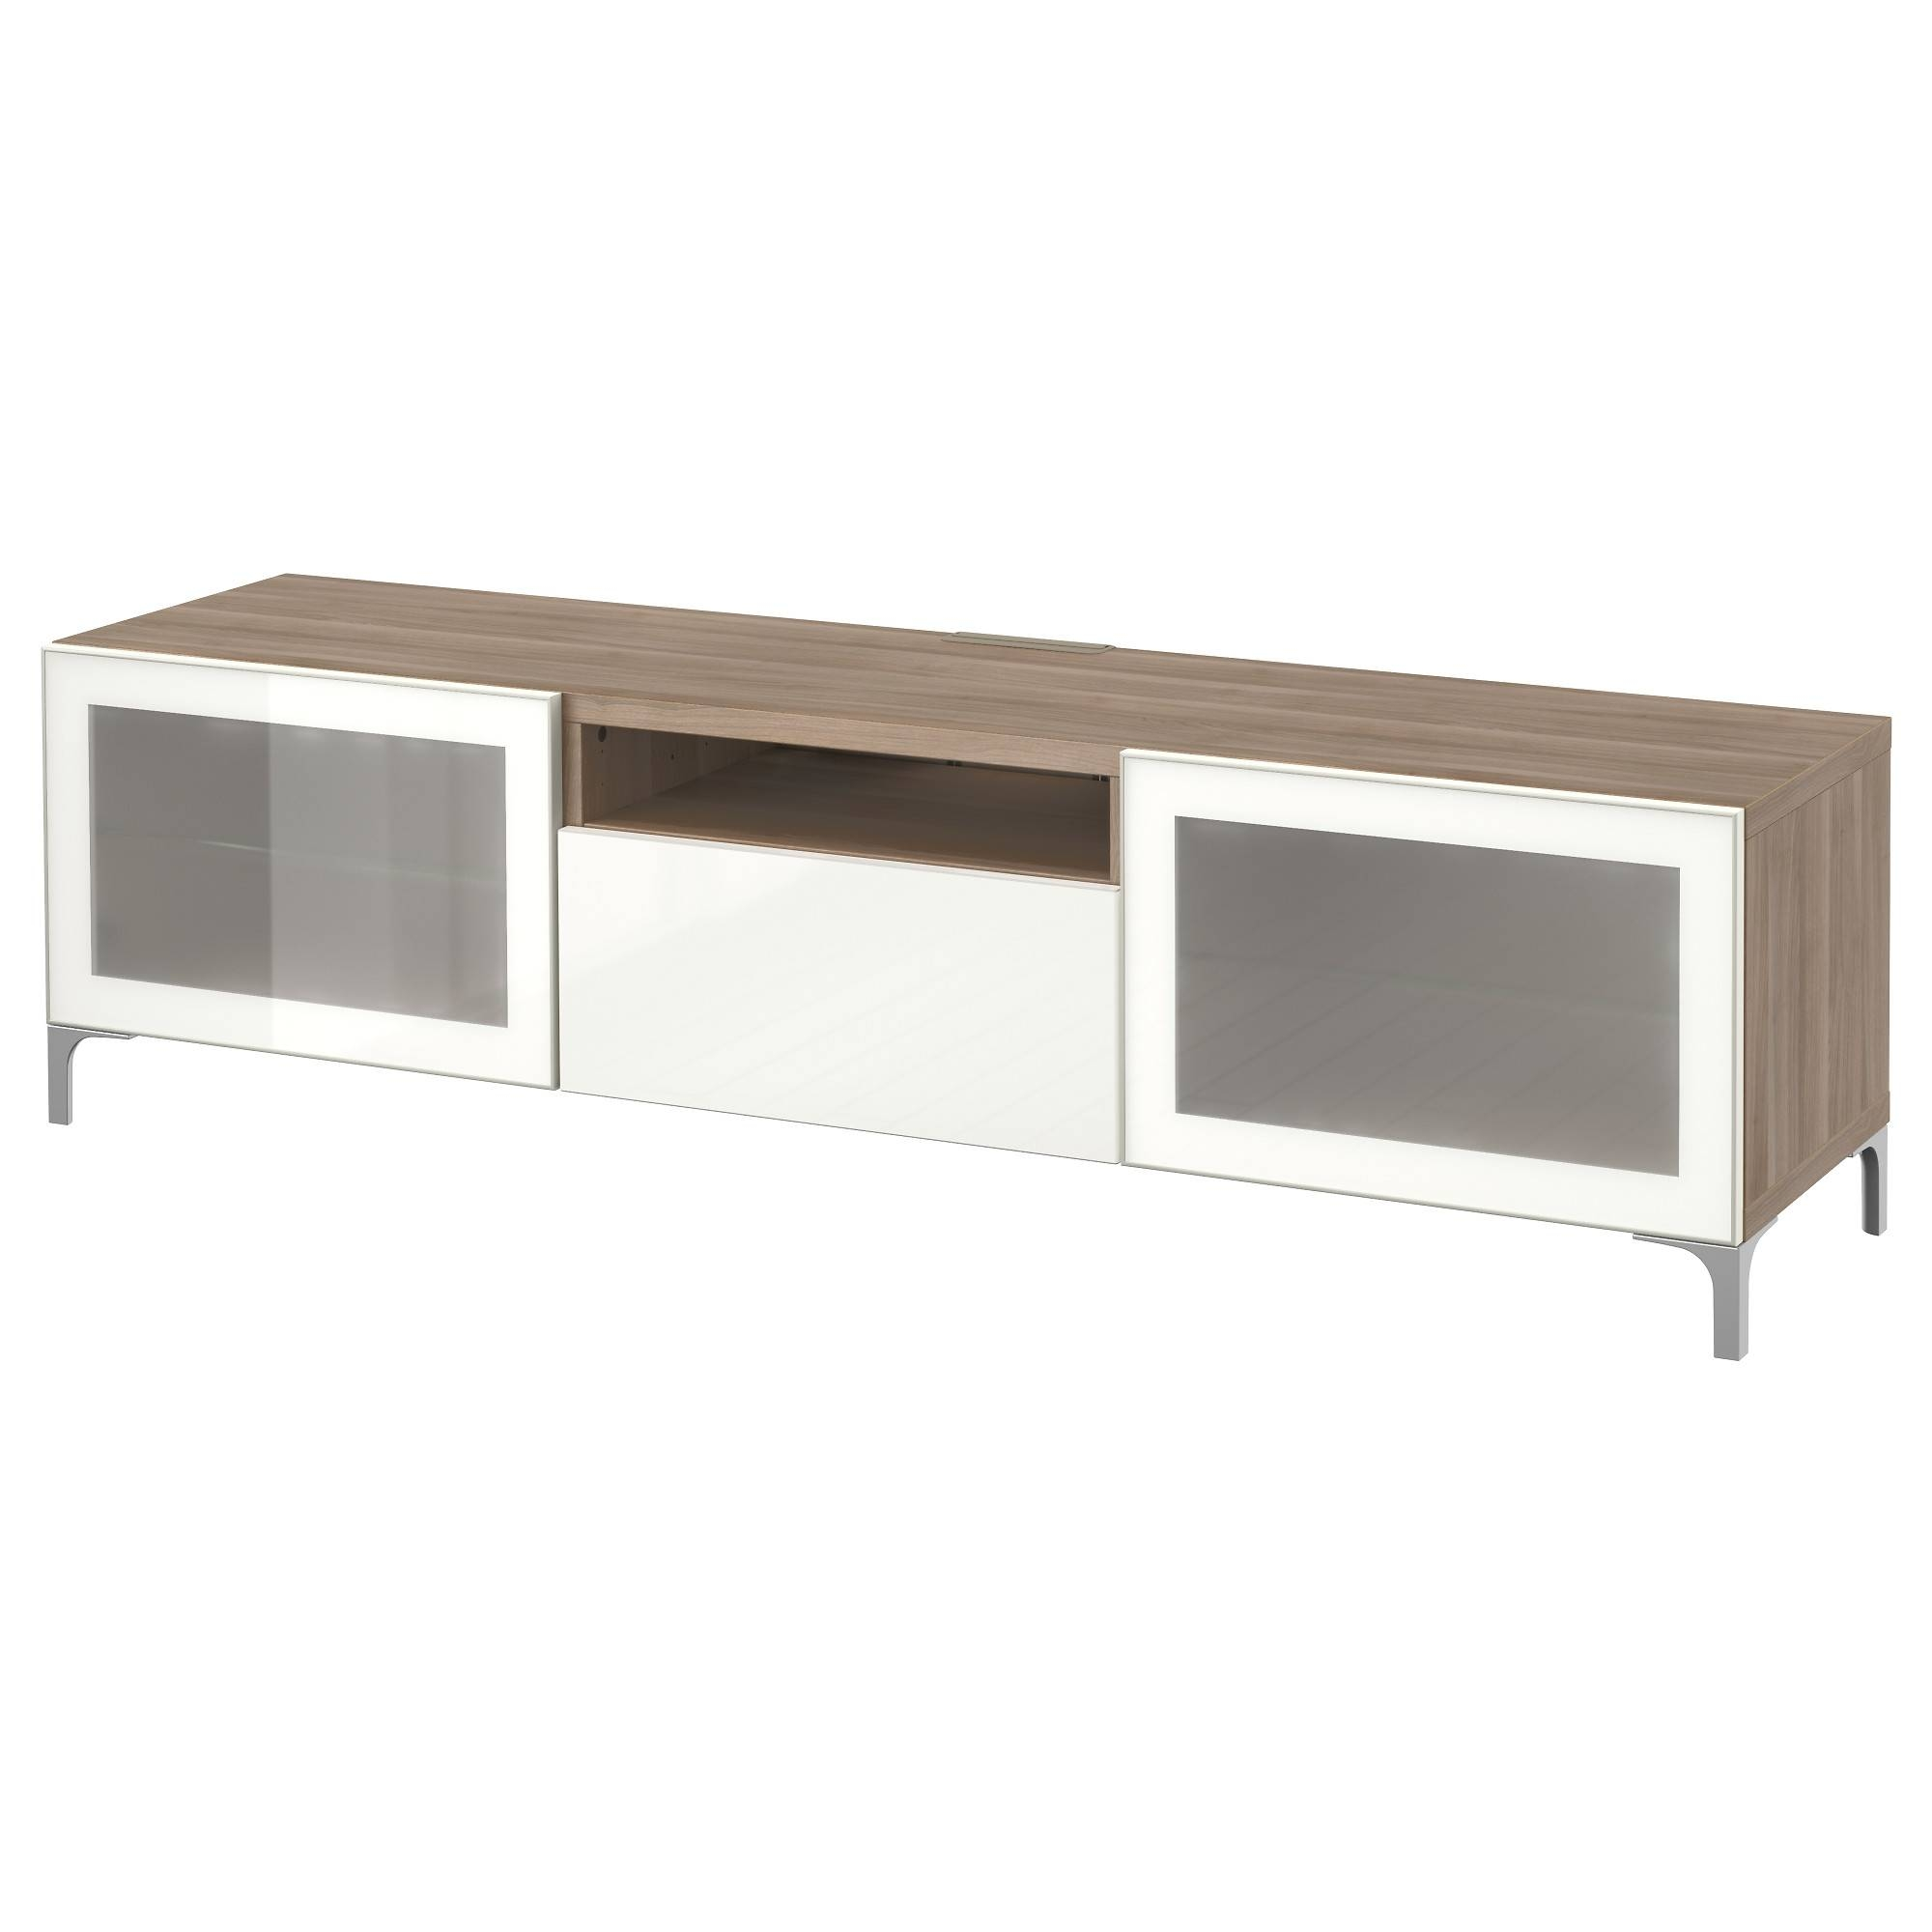 Bestå Tv Unit – Lappviken/sindvik White Clear Glass, Drawer Runner Pertaining To Smoked Glass Tv Stands (View 4 of 15)